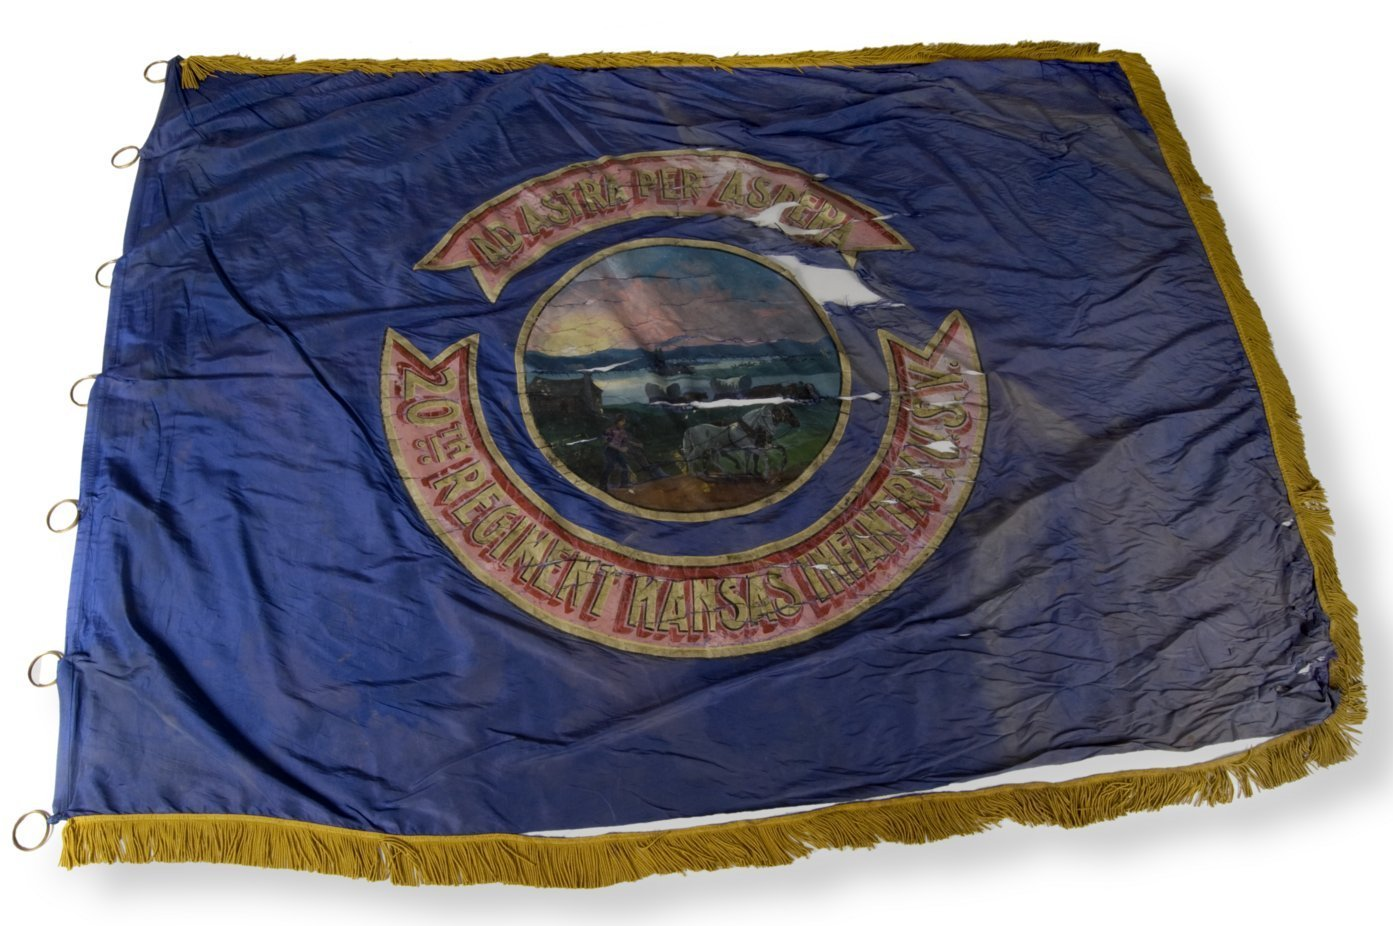 20th Kansas Volunteer Infantry flag